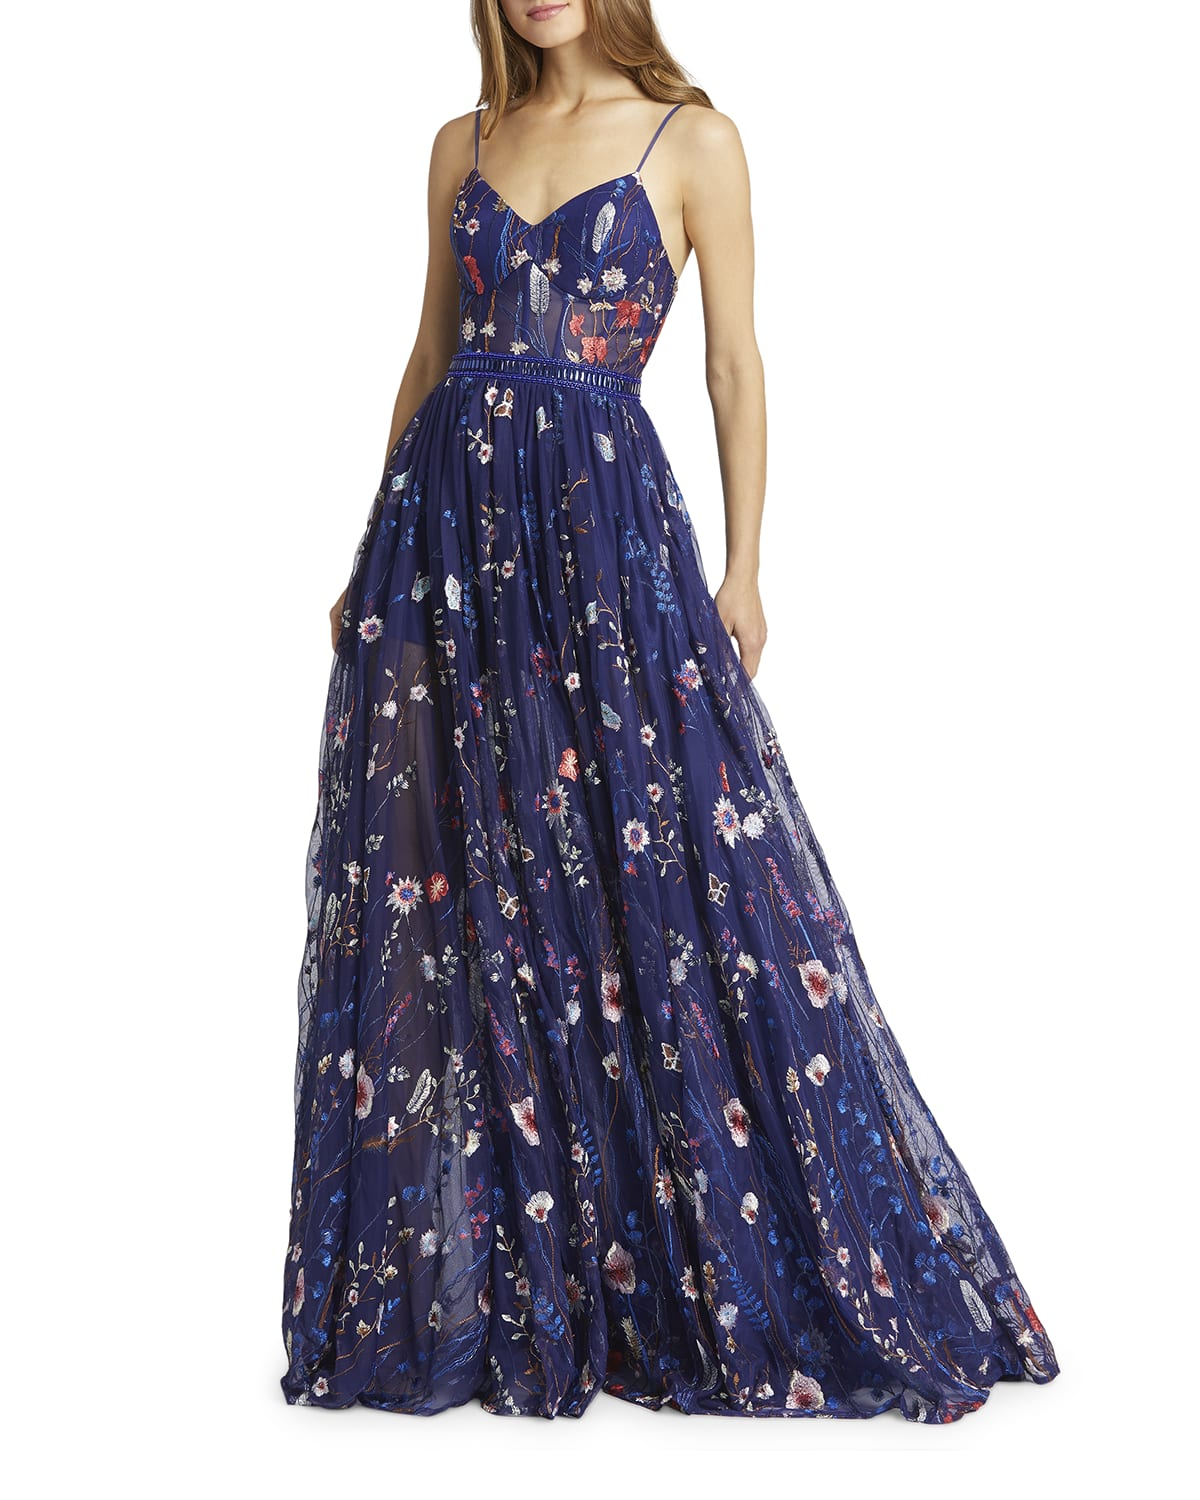 Floral-Embroidered Sweetheart Sleeveless Bustier Gown